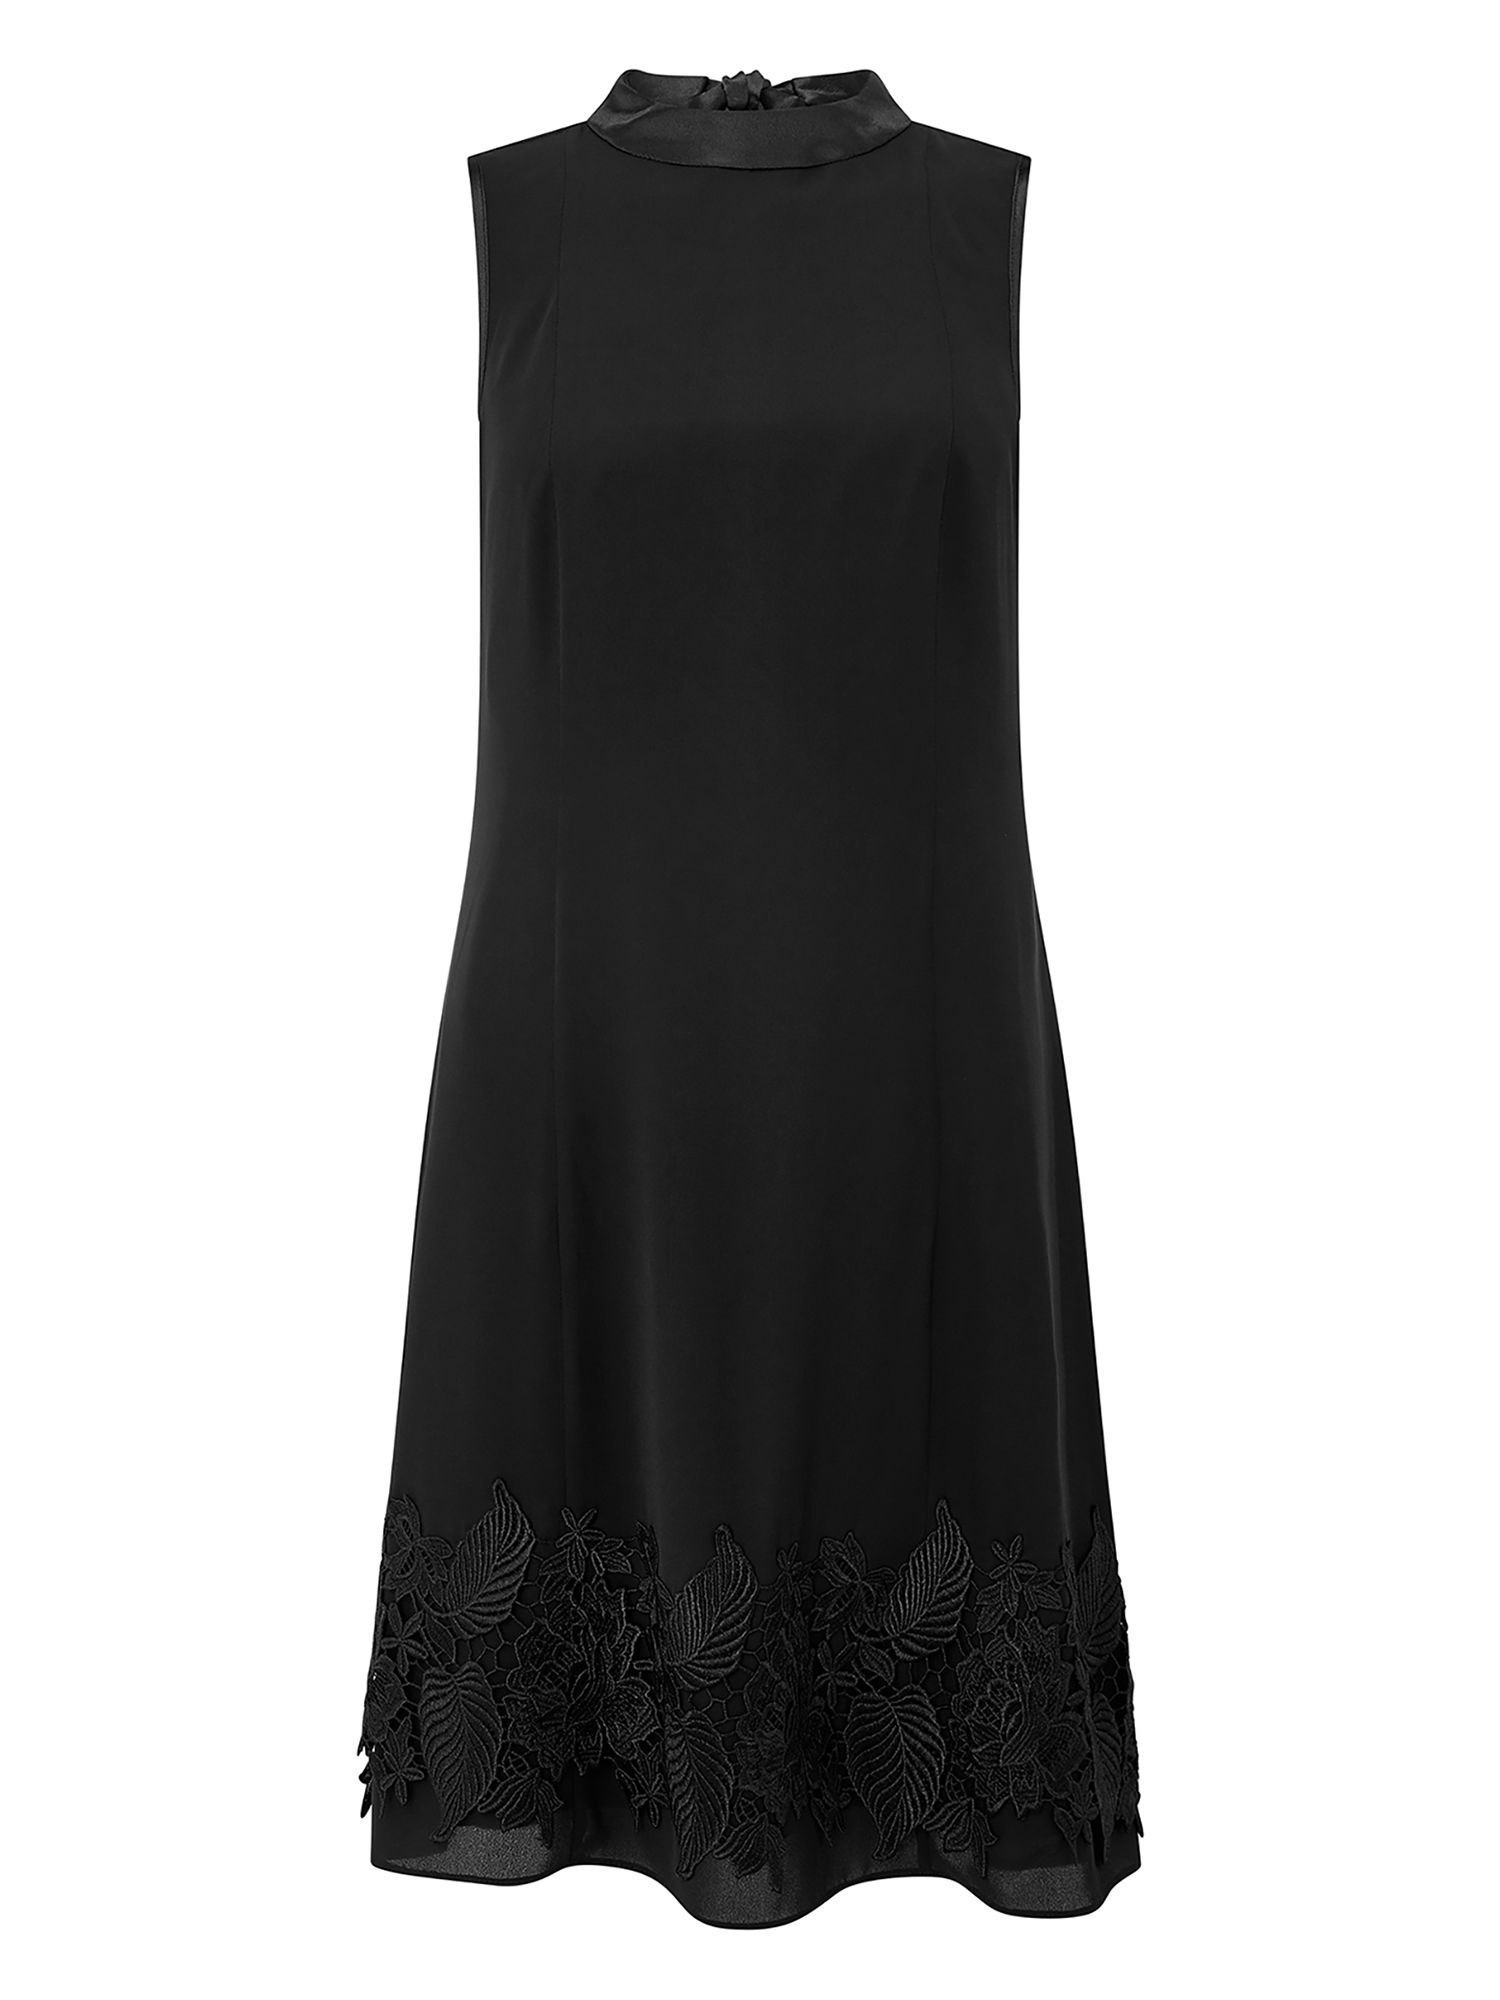 Monsoon Dorri Dress, Black